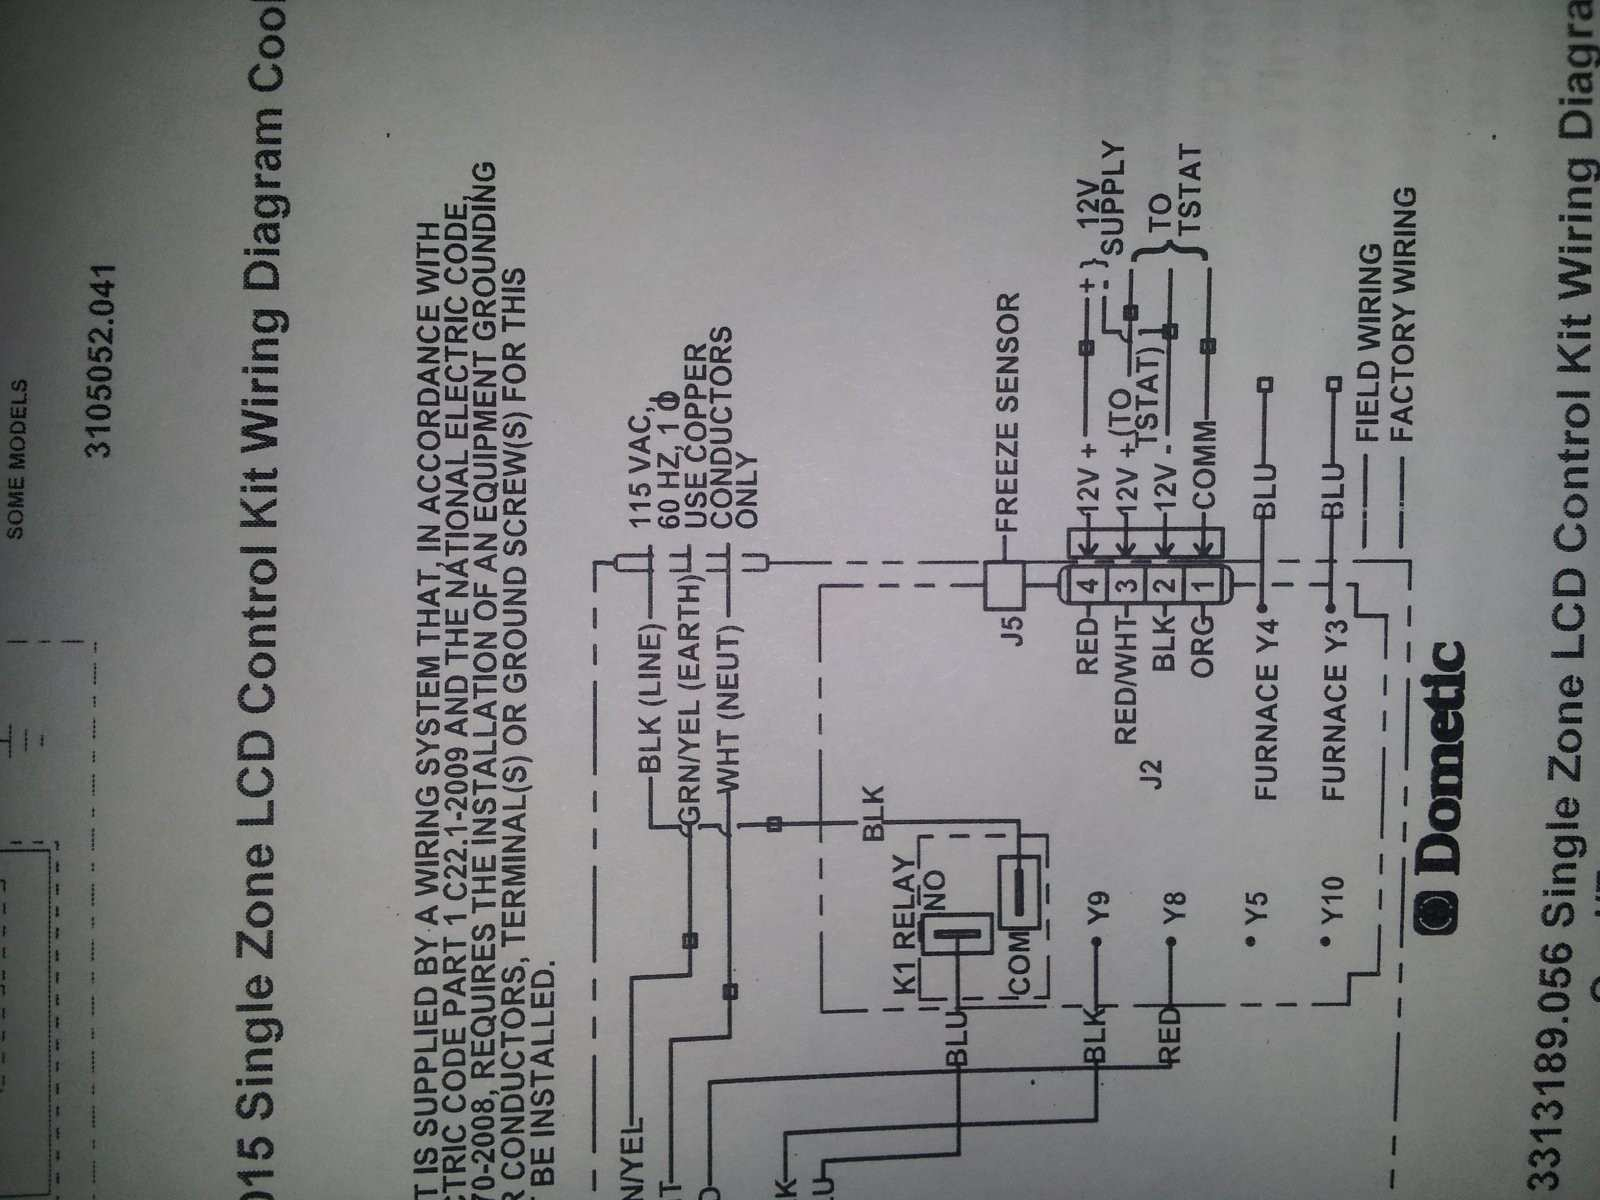 Dometic Lcd Thermostat Wiring Diagram - Trusted Wiring Diagram Online - Dometic Single Zone Lcd Thermostat Wiring Diagram